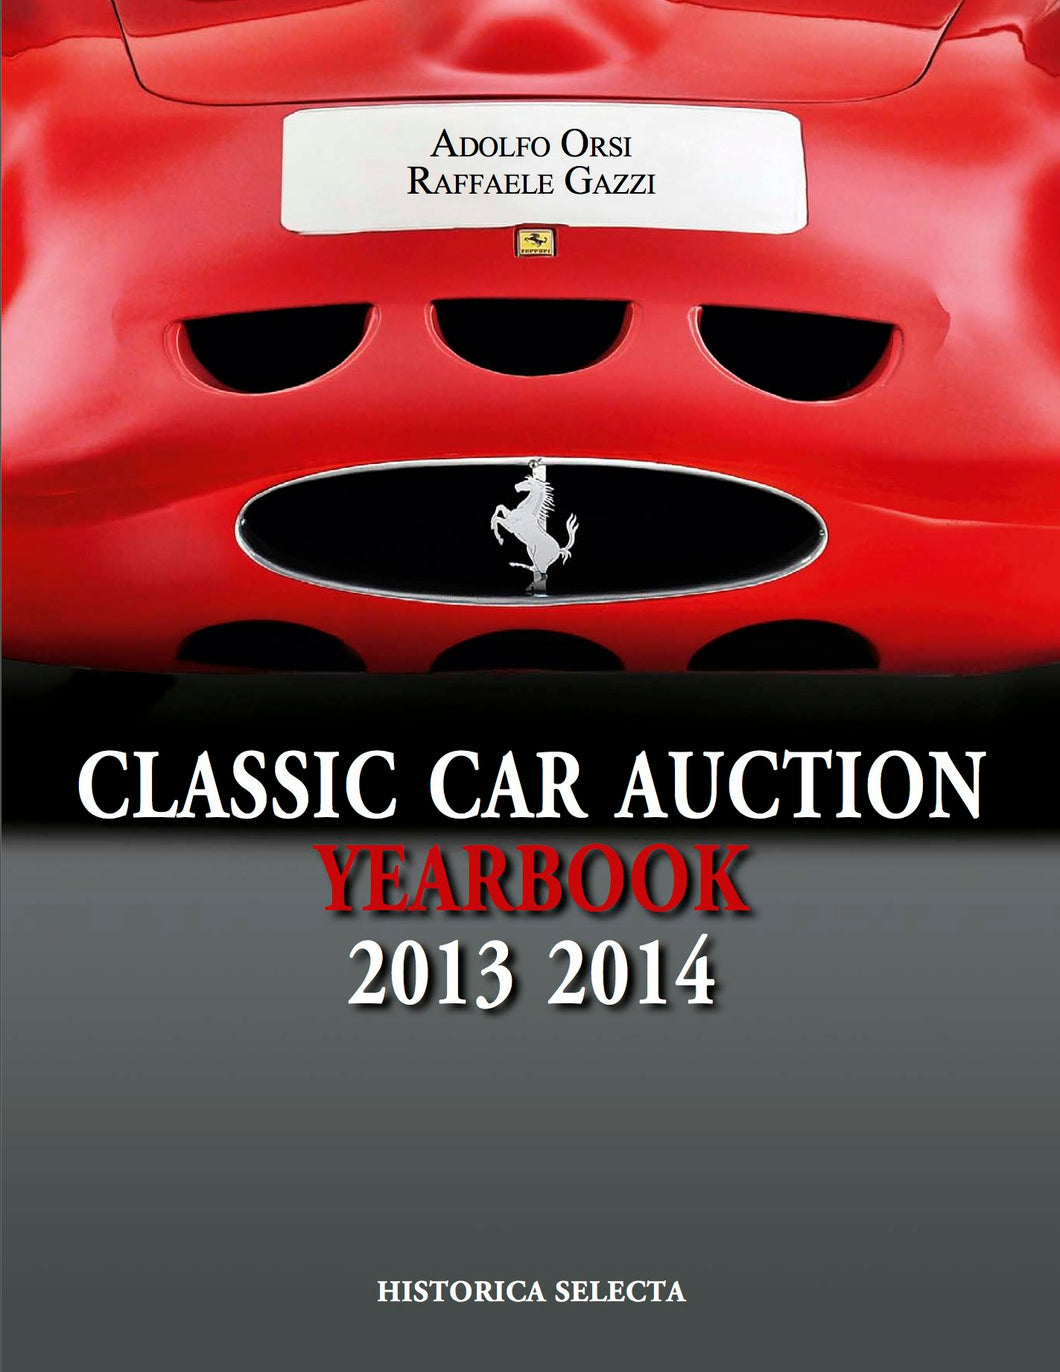 Classic Car Auction Yearbook 2013 - 2014